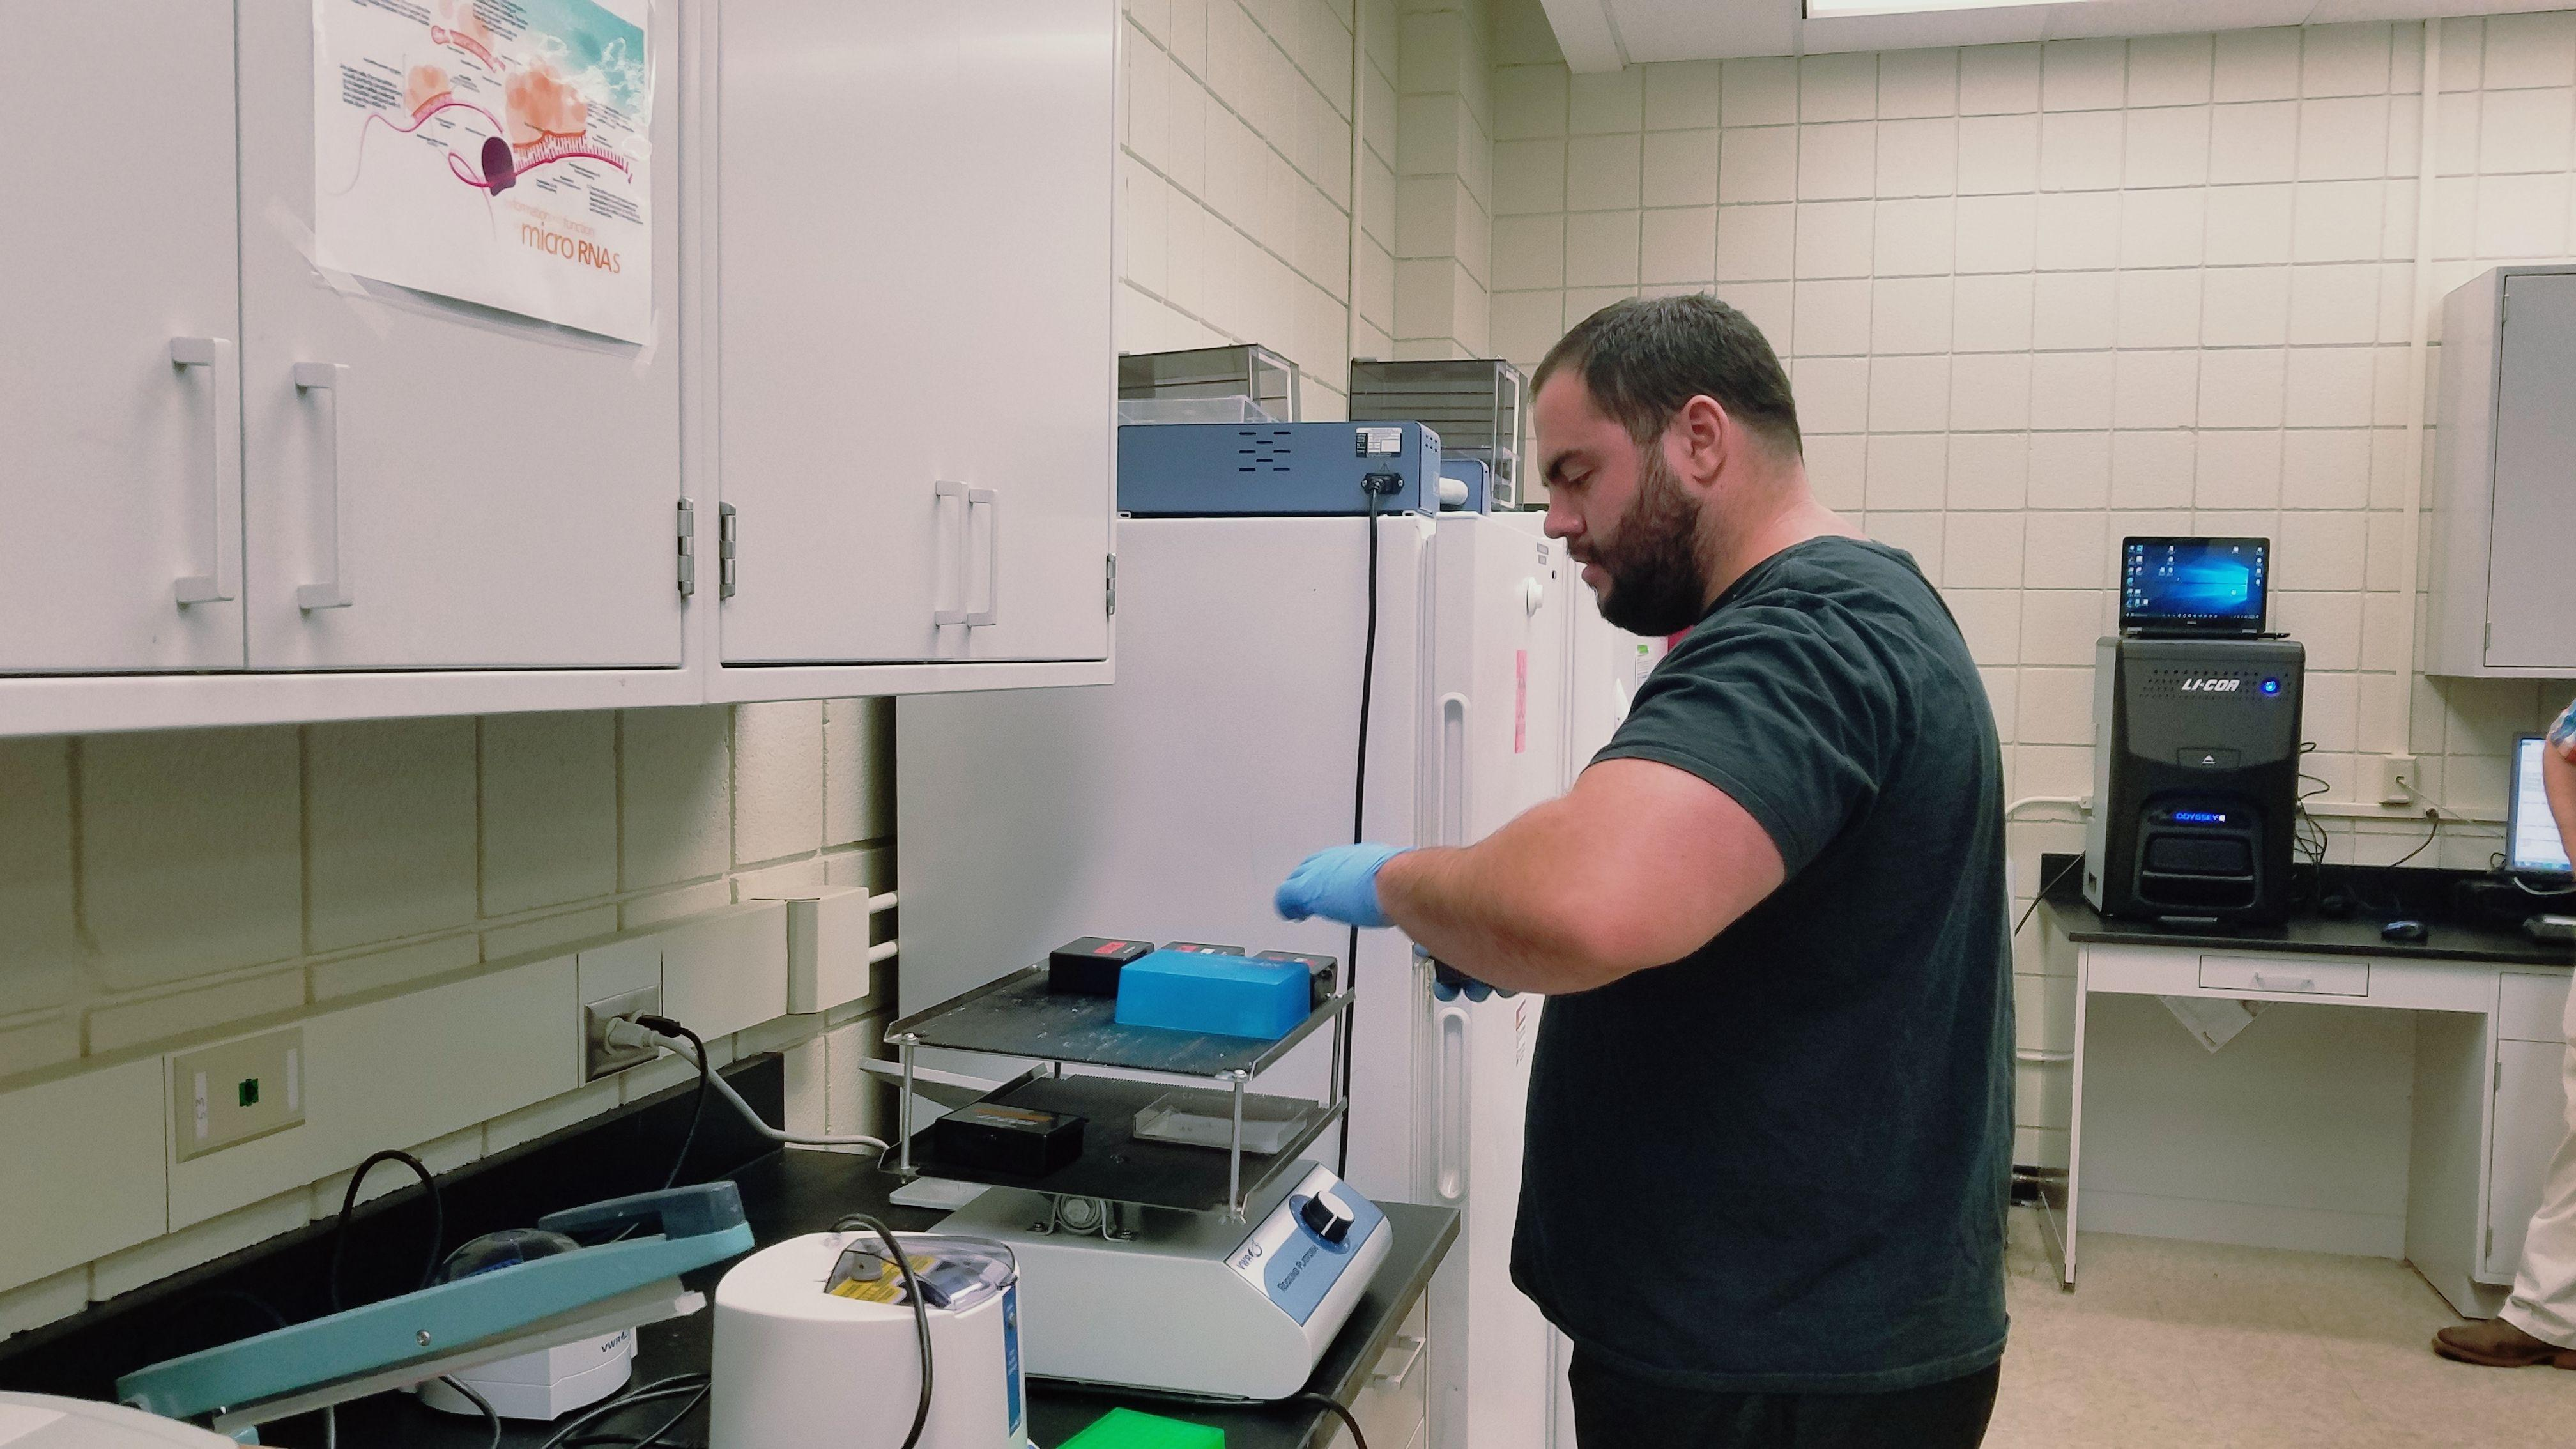 PhD student working in molecular physiology lab